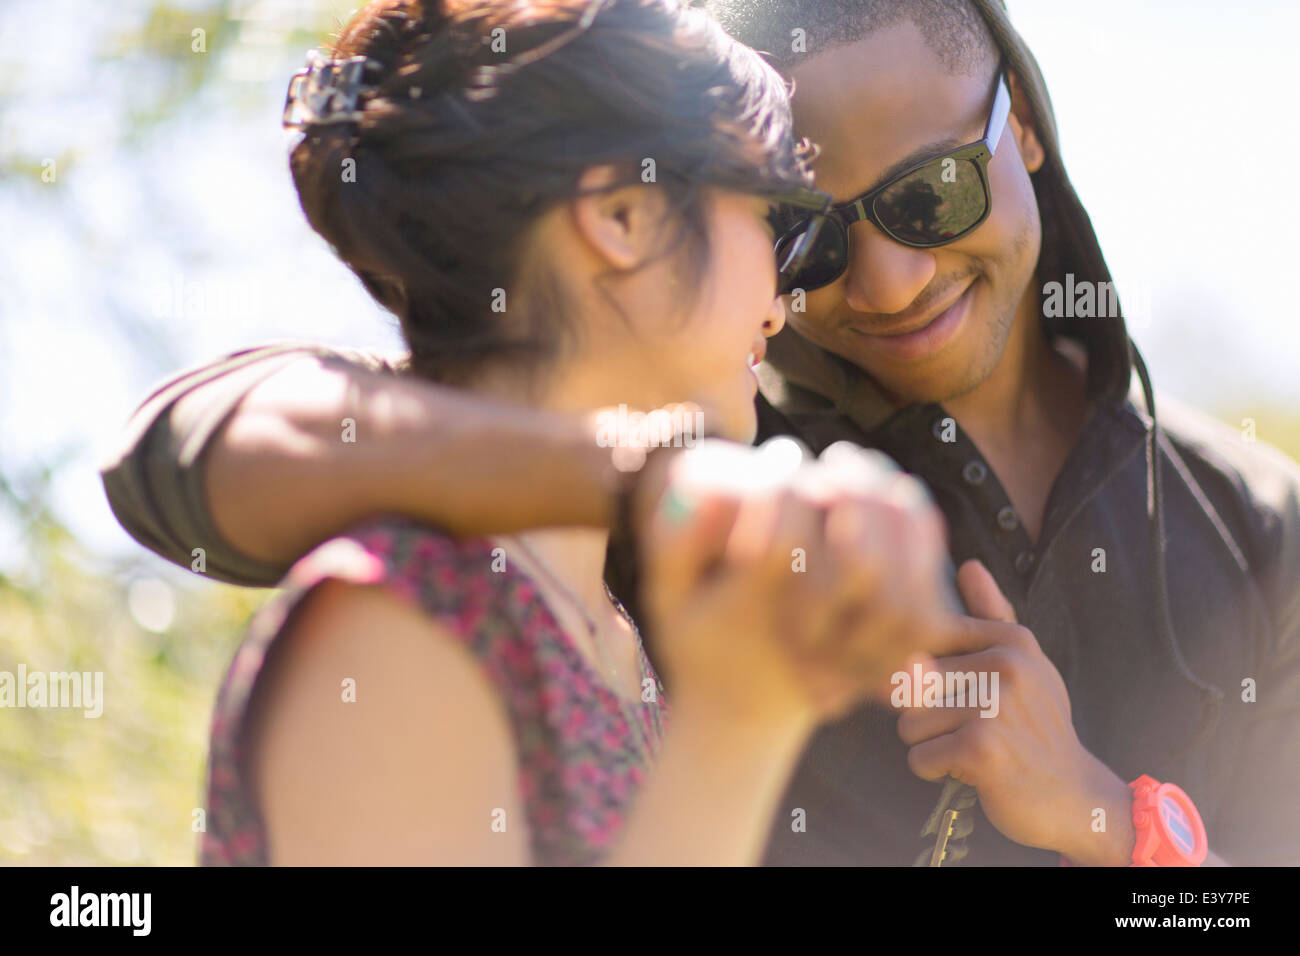 Close up of romantic young couple holding hands Stock Photo